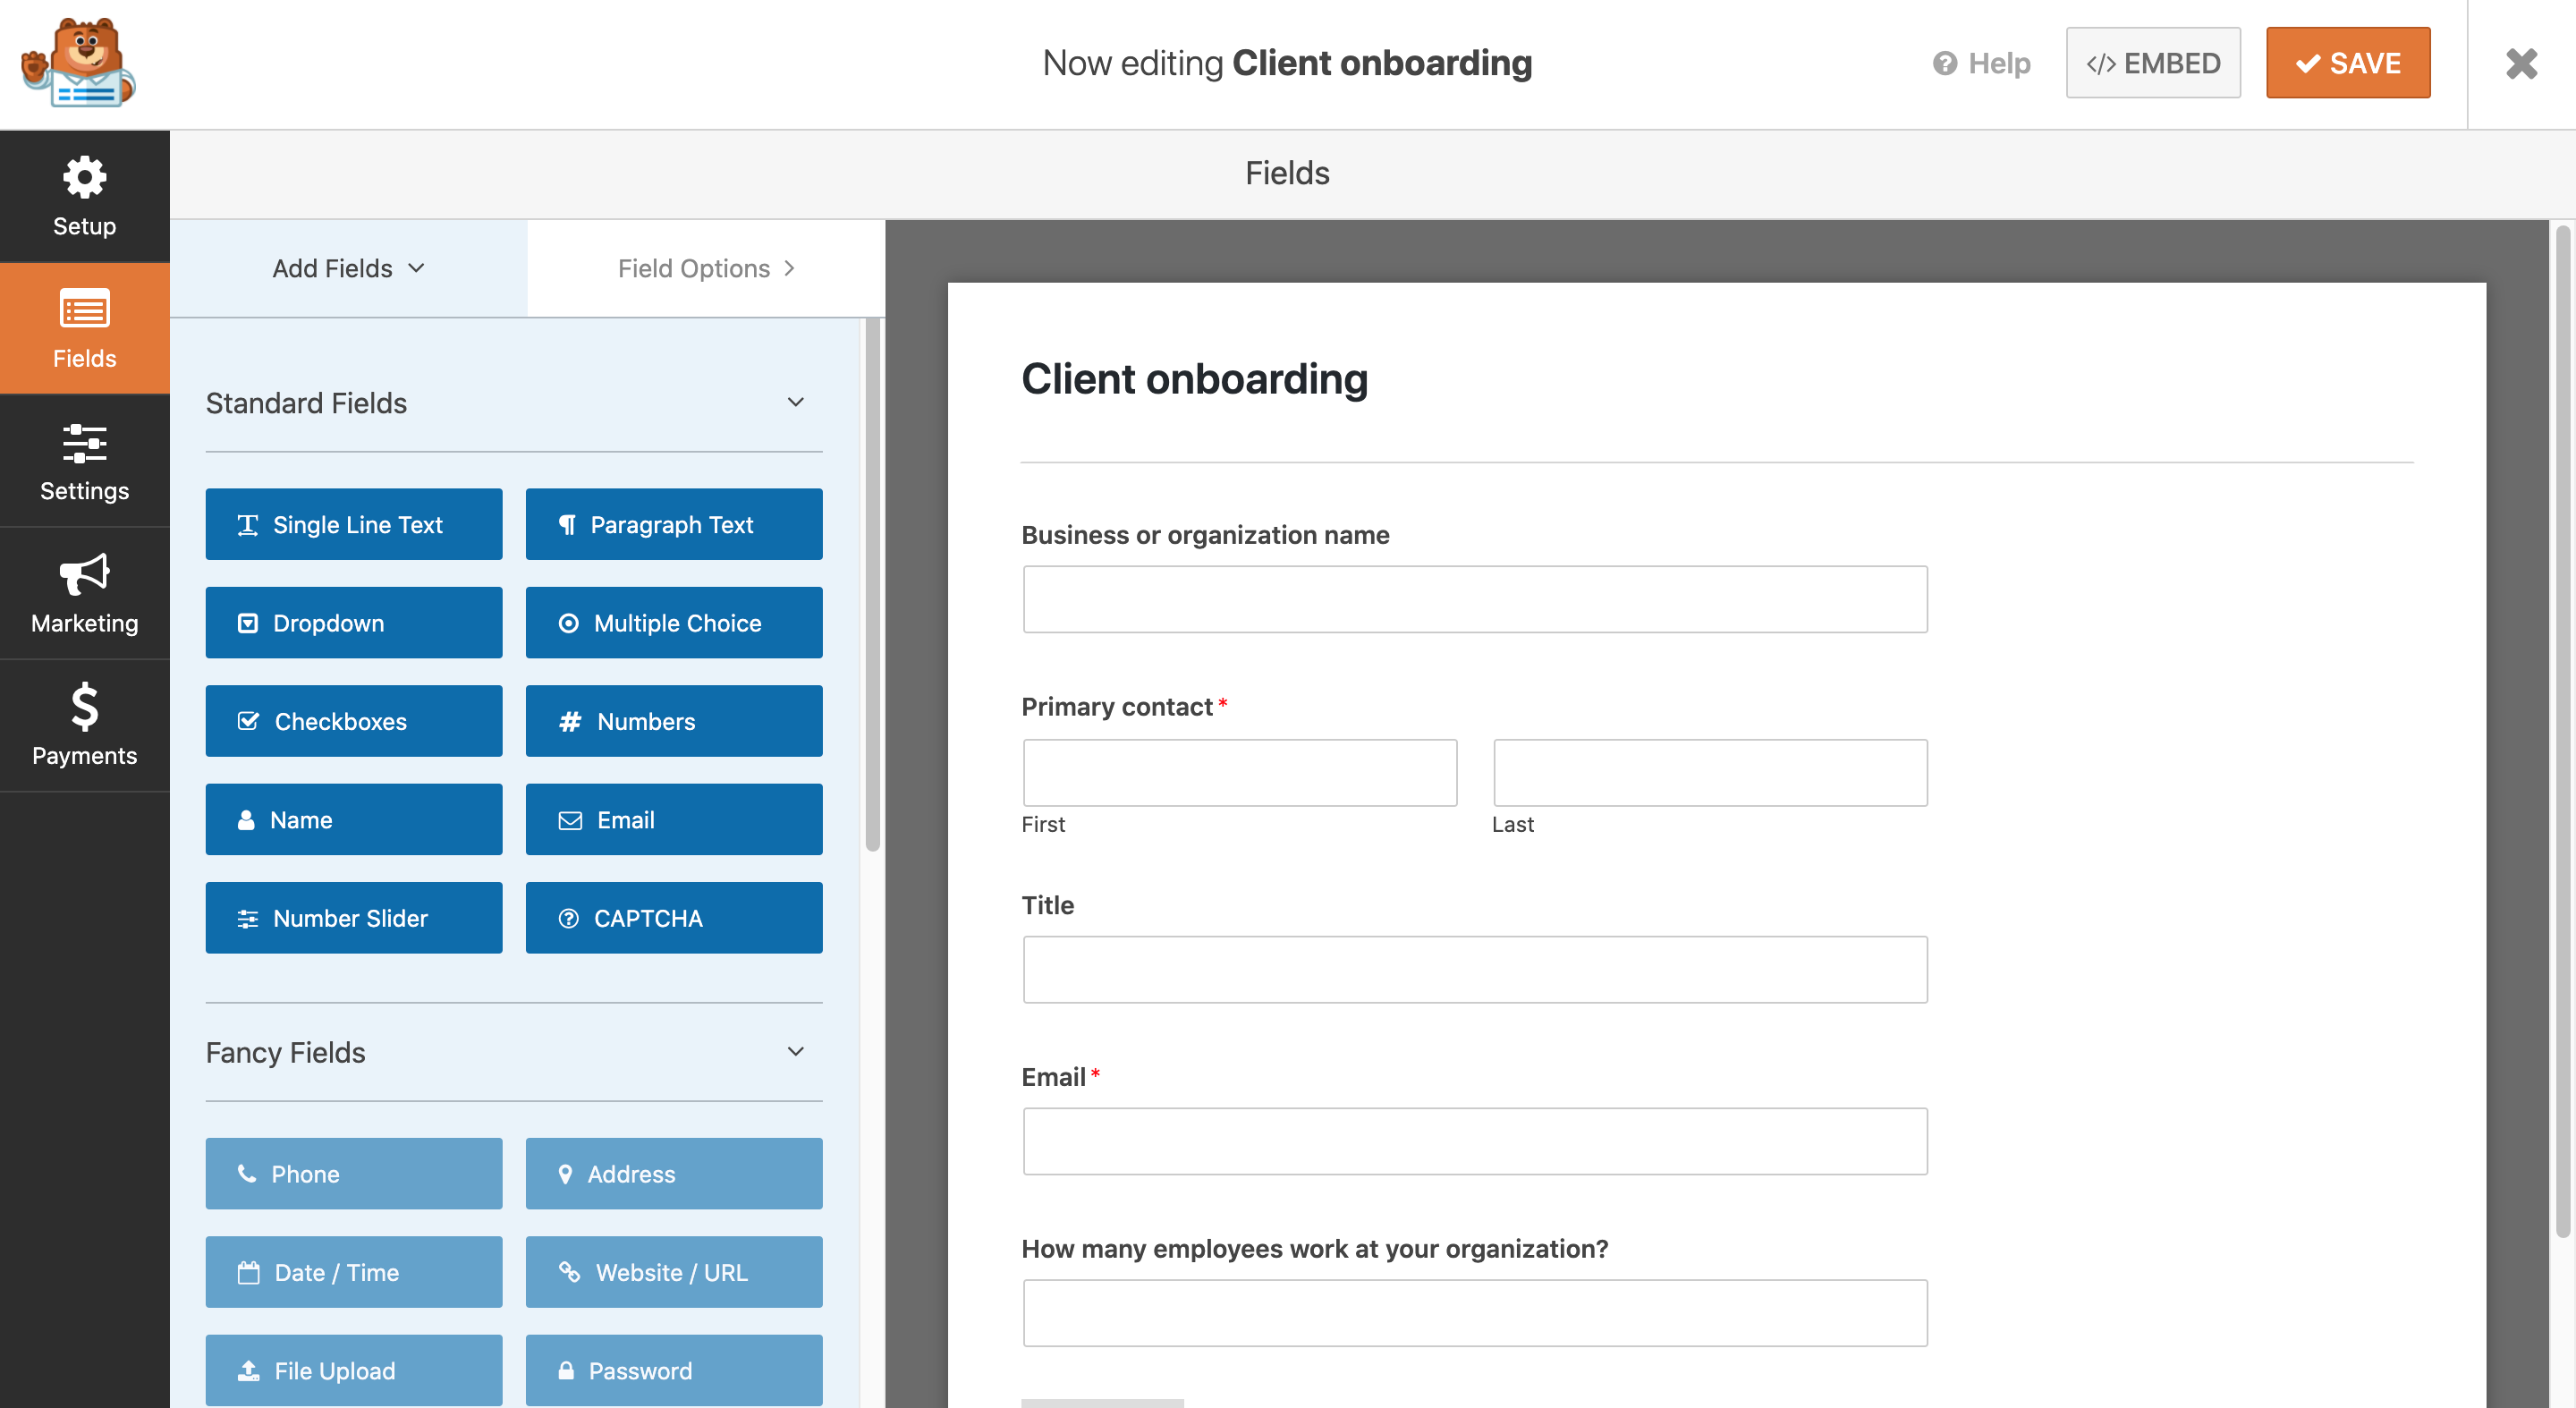 A client onboarding form created using WPForms.